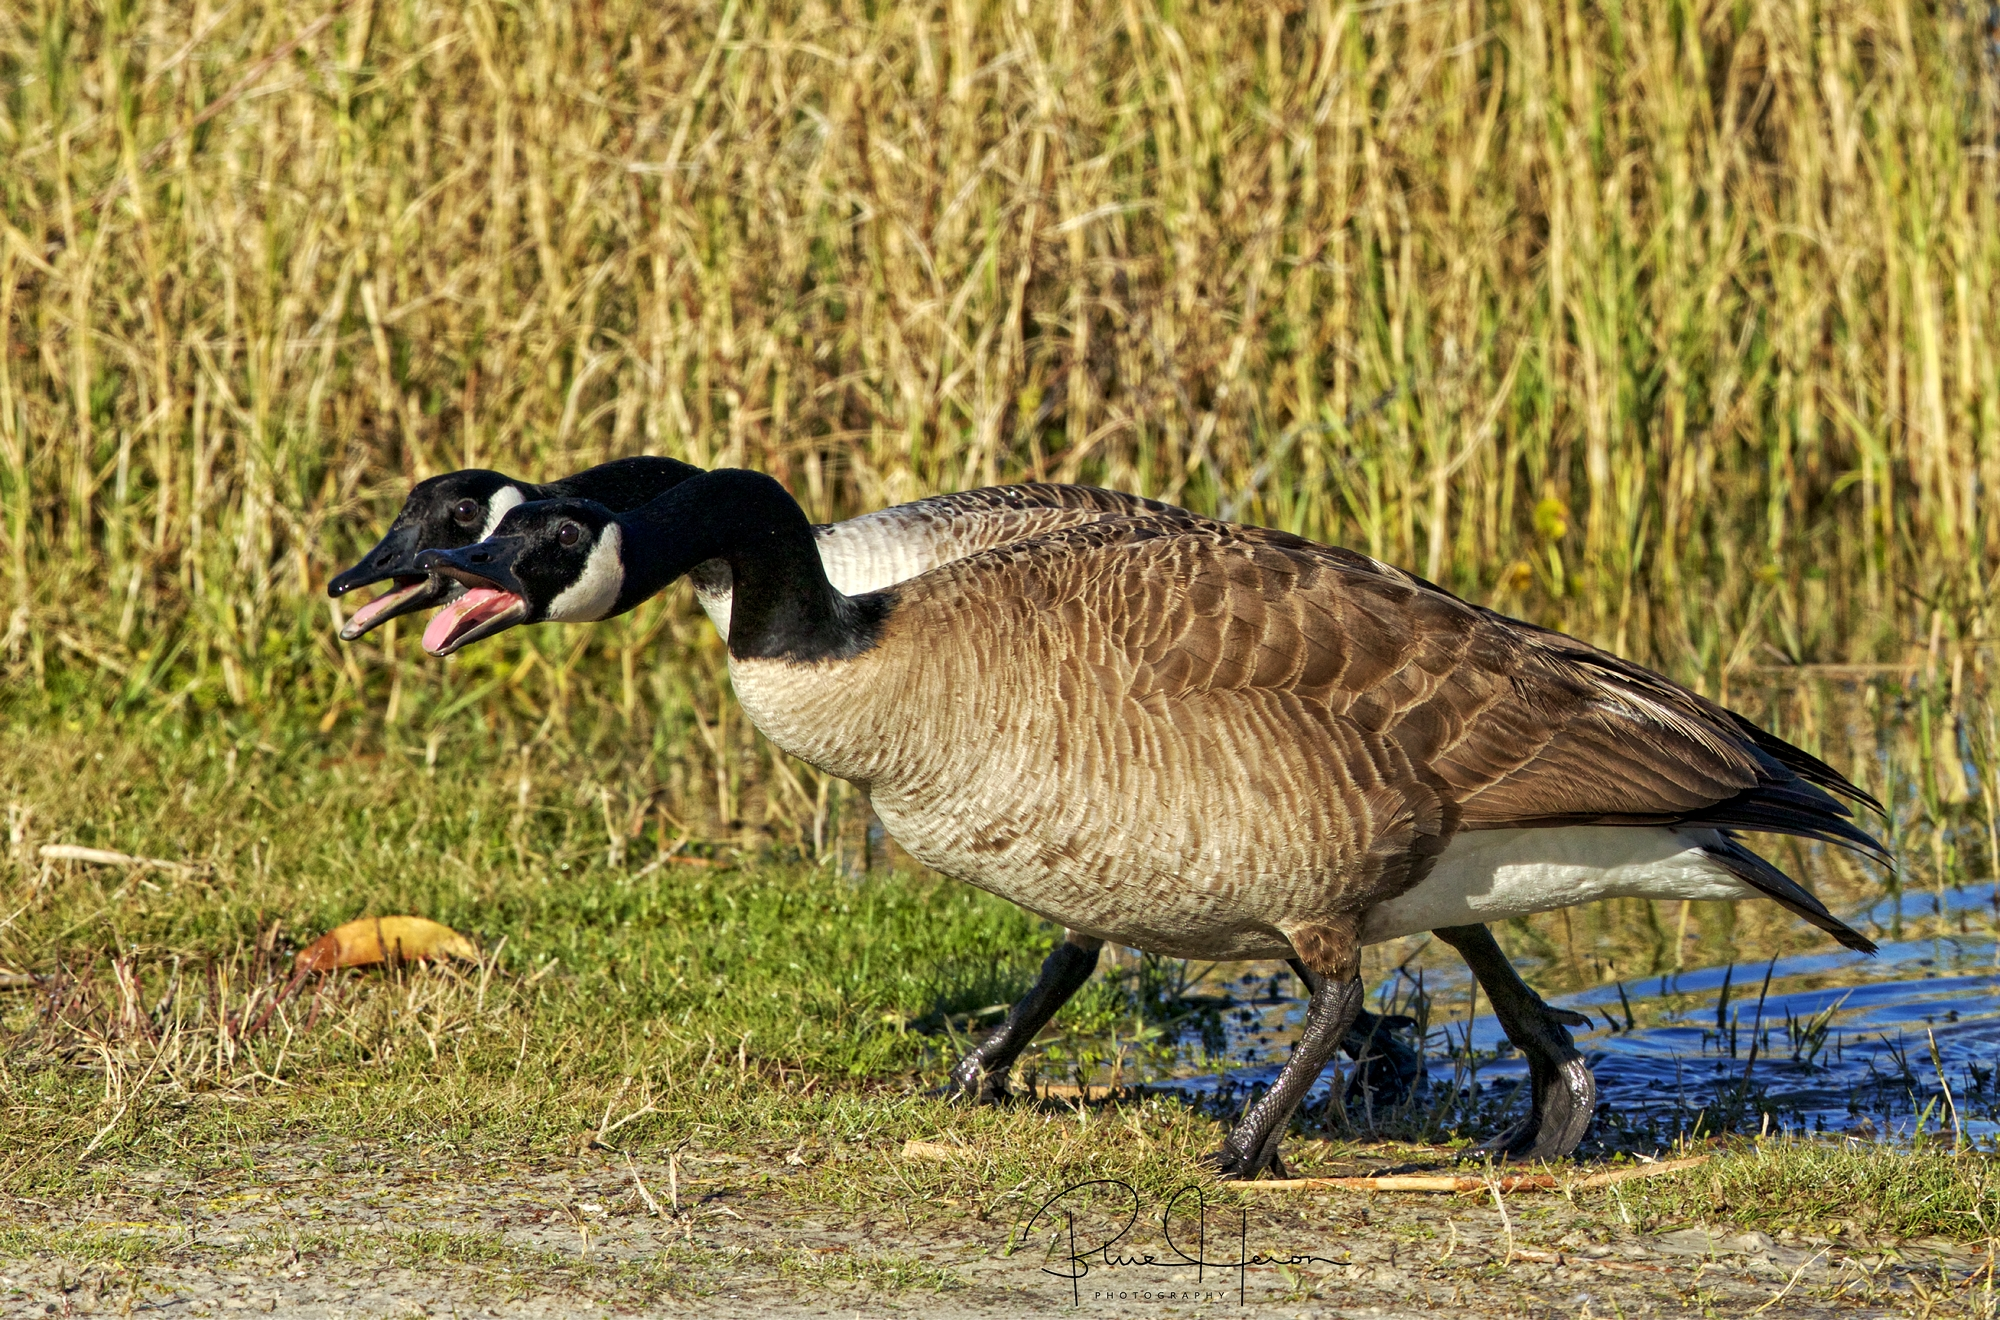 You don't talk to me like that you fat goose!